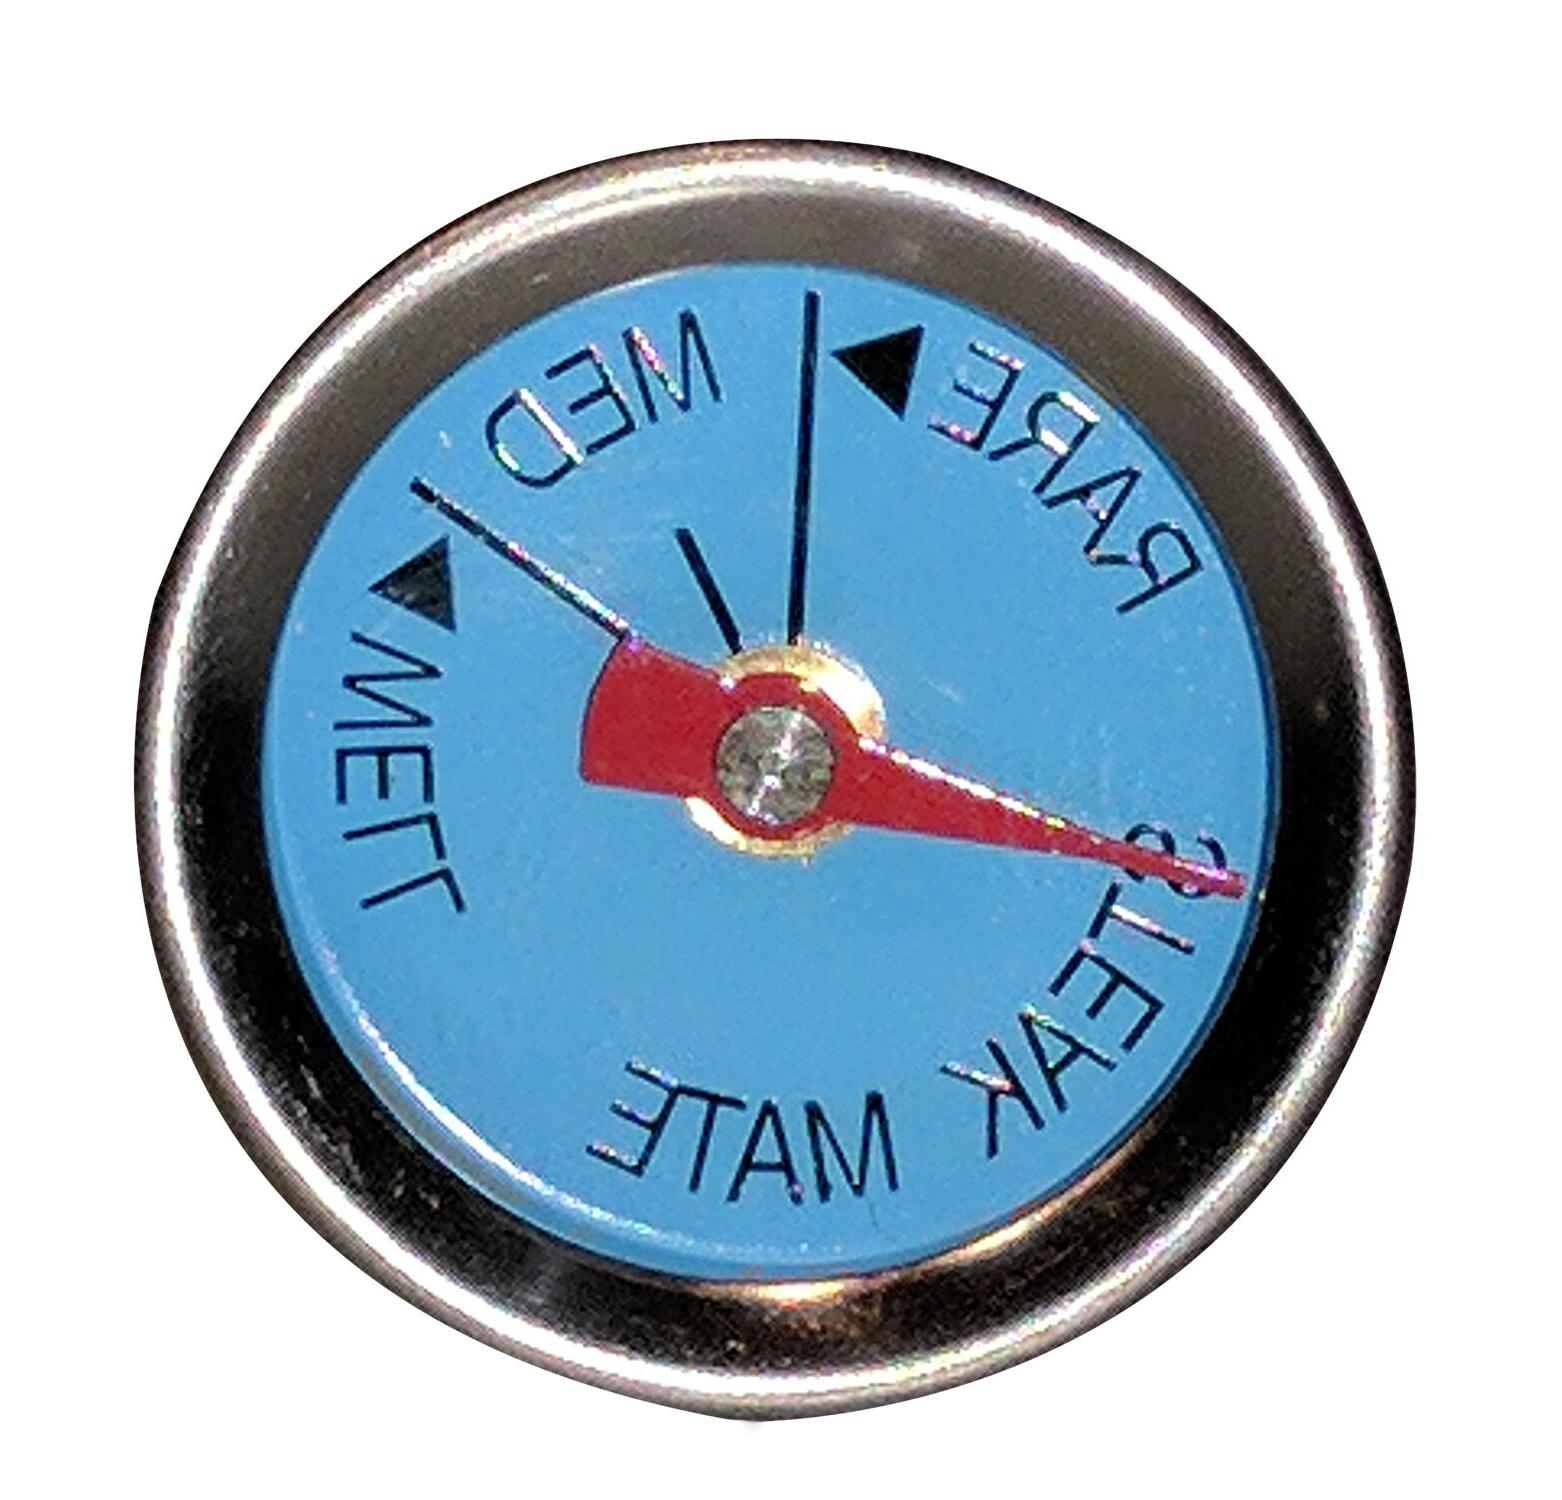 New Steak Mate Thermometers Stainless Steel Oven Safe